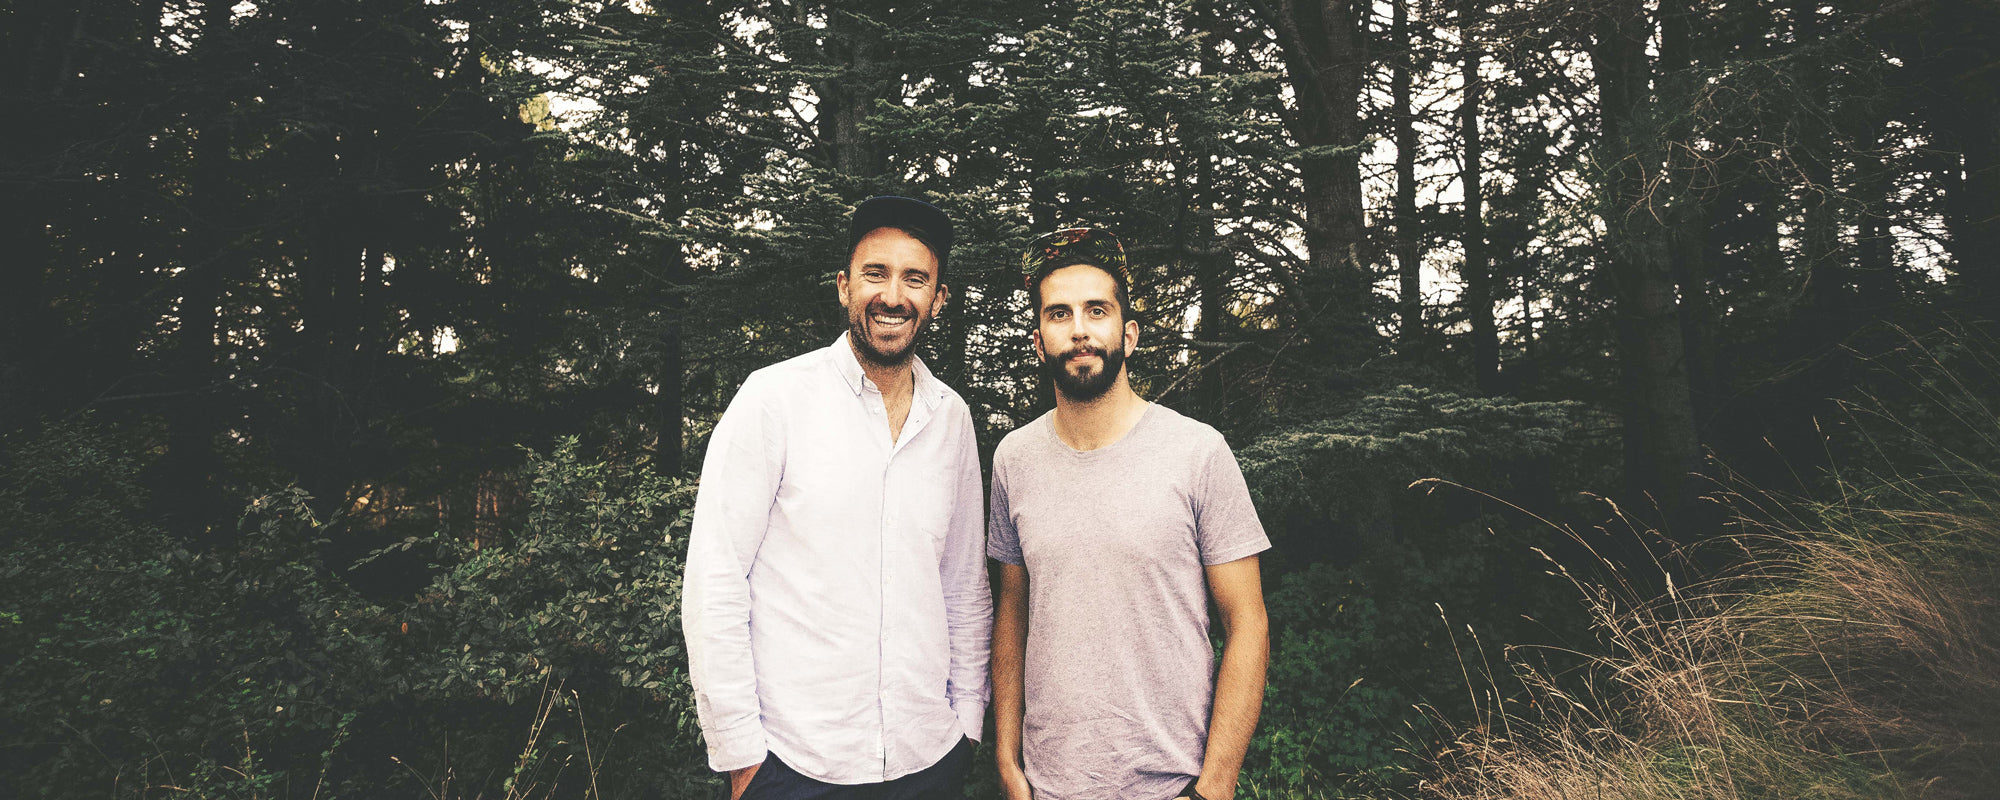 Offcut Co-CEOs Adrien Taylor and Dan Price.